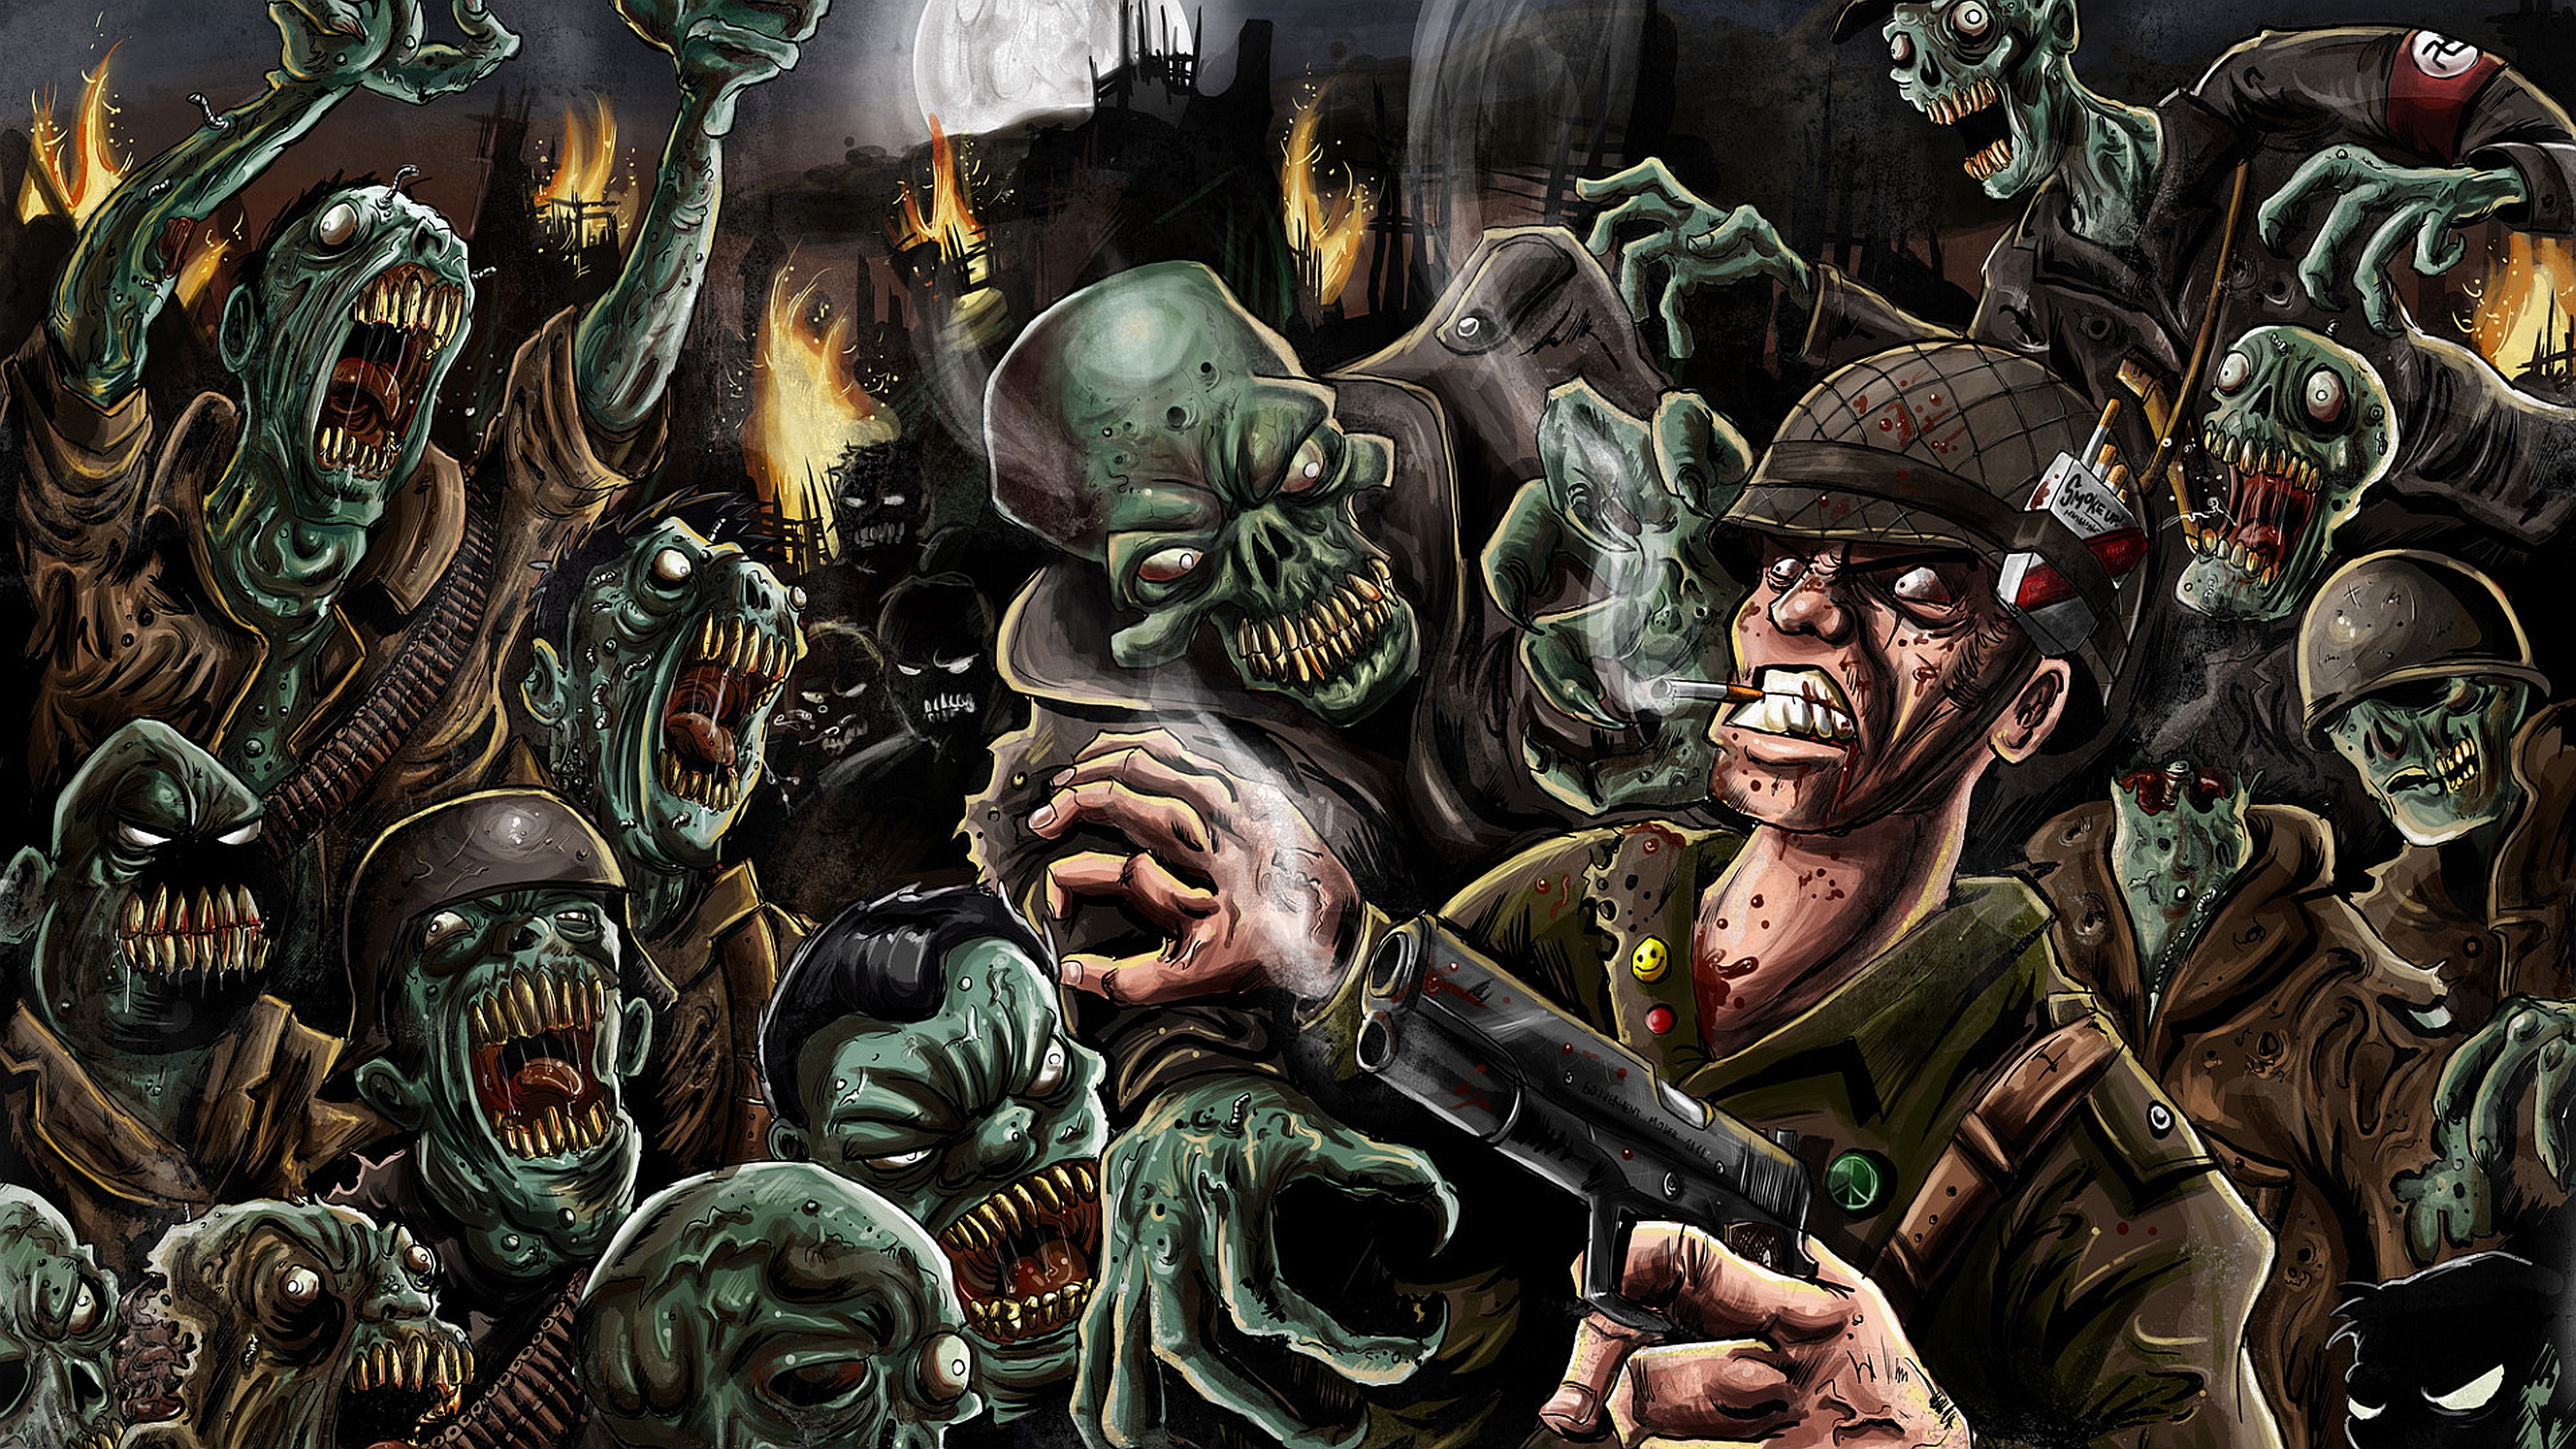 soldier fighting nazi zombies cartoon wallpaper from Zombie wallpapers 3840x2160